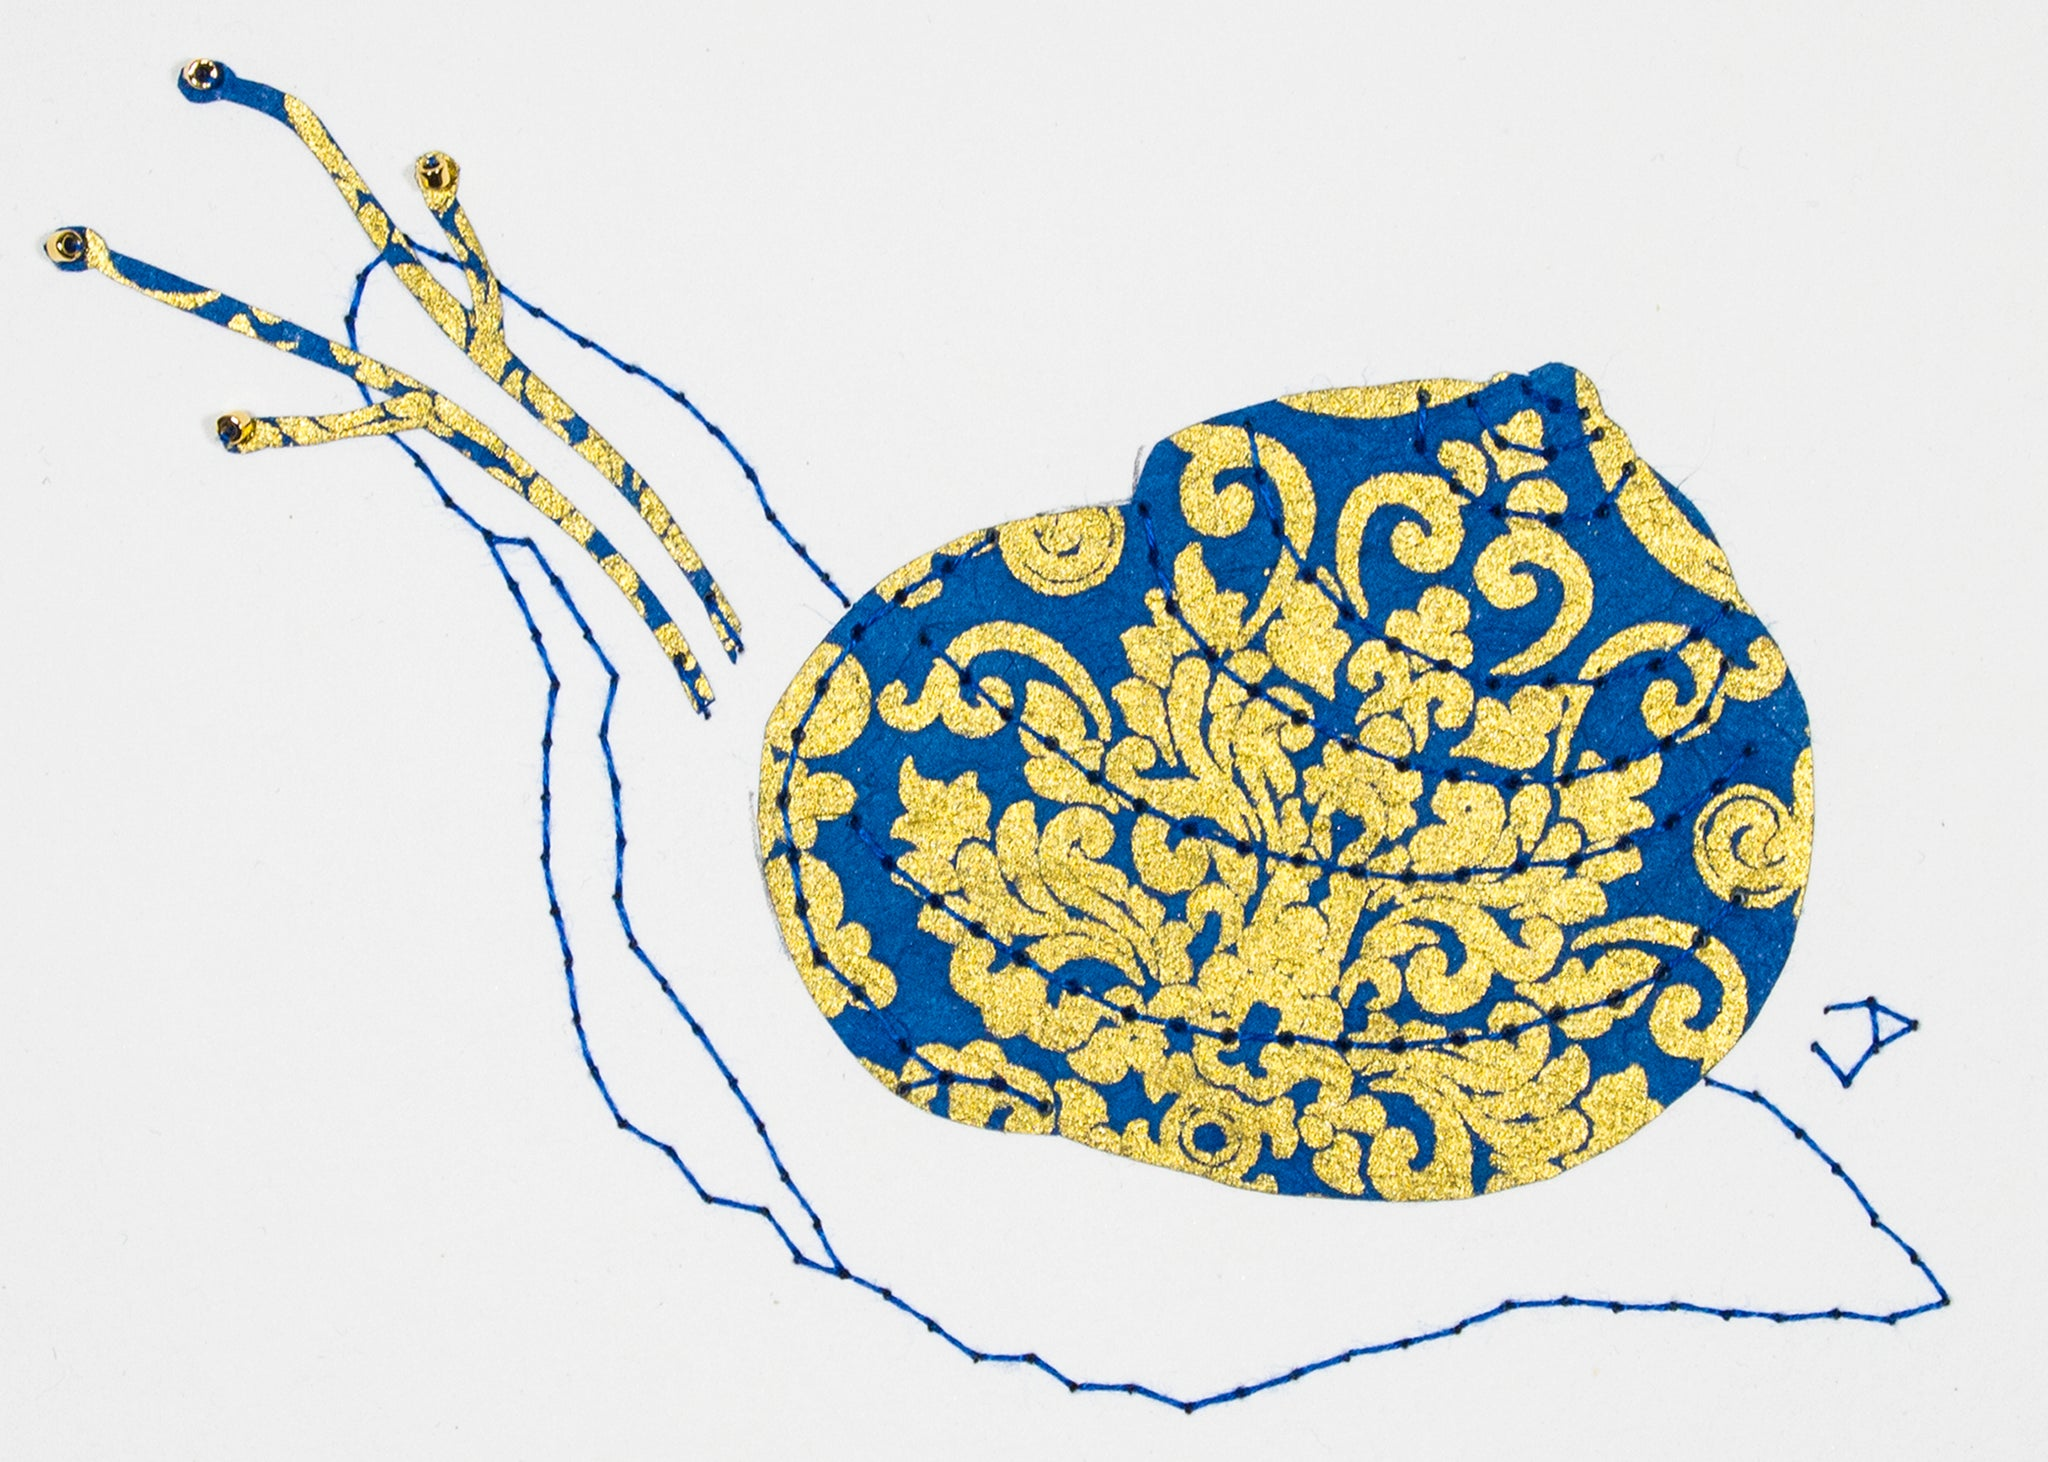 Garden Snail in Gold & Blue